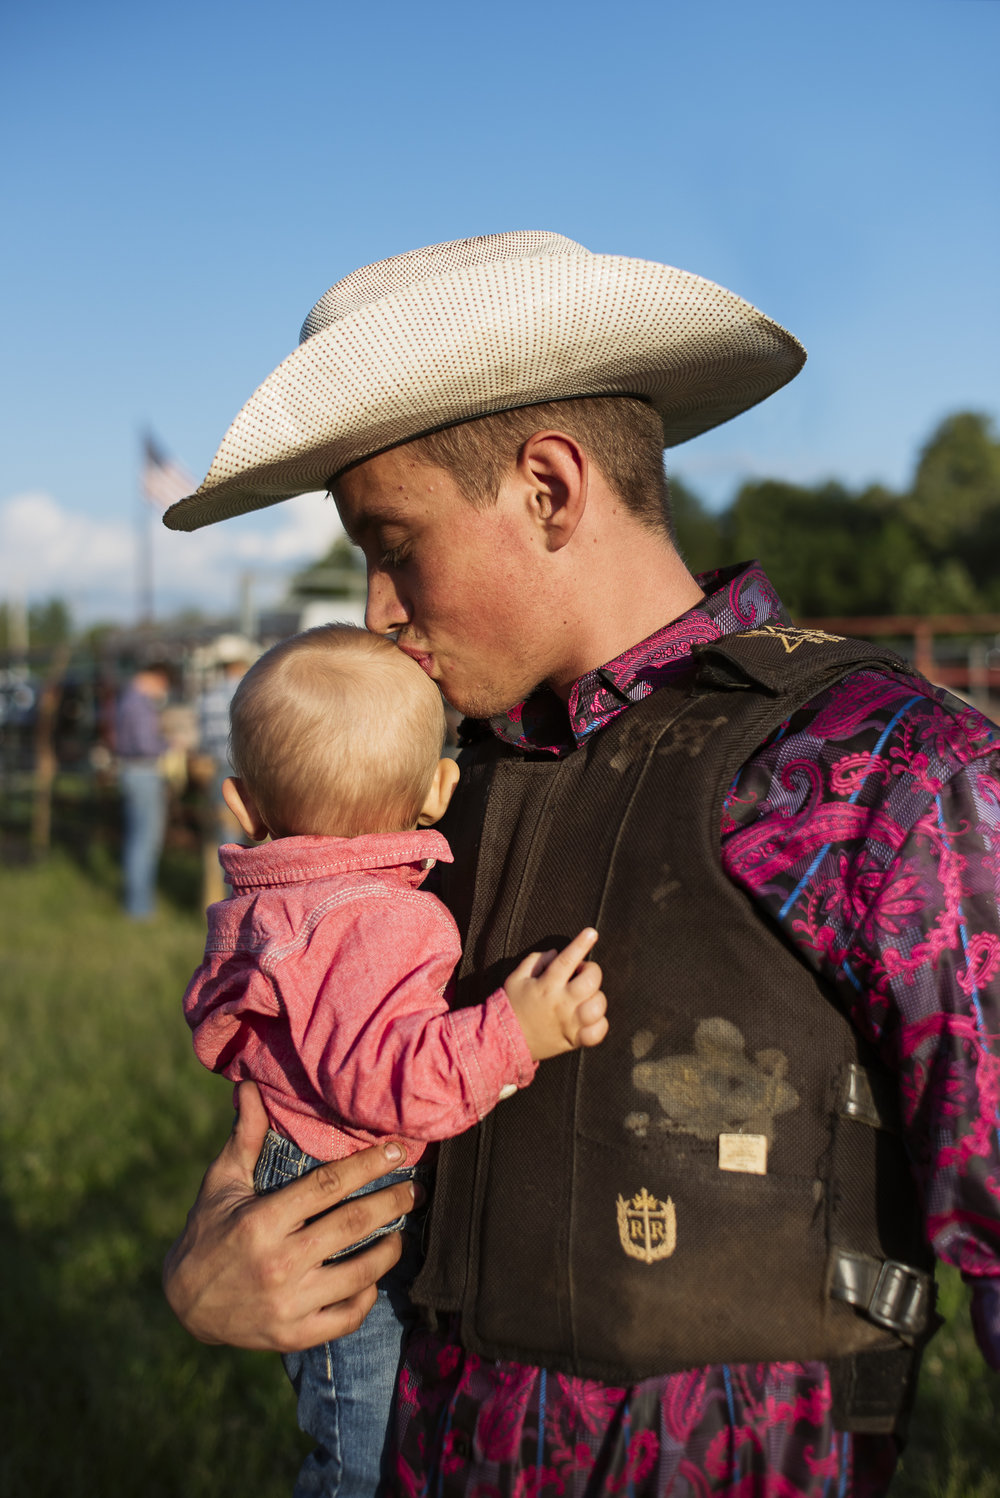 Jack Sorokin Rodeo Portrait Young Man Kissing Baby Head Sunset North Carolina Photography Editorial Madison County Marshall